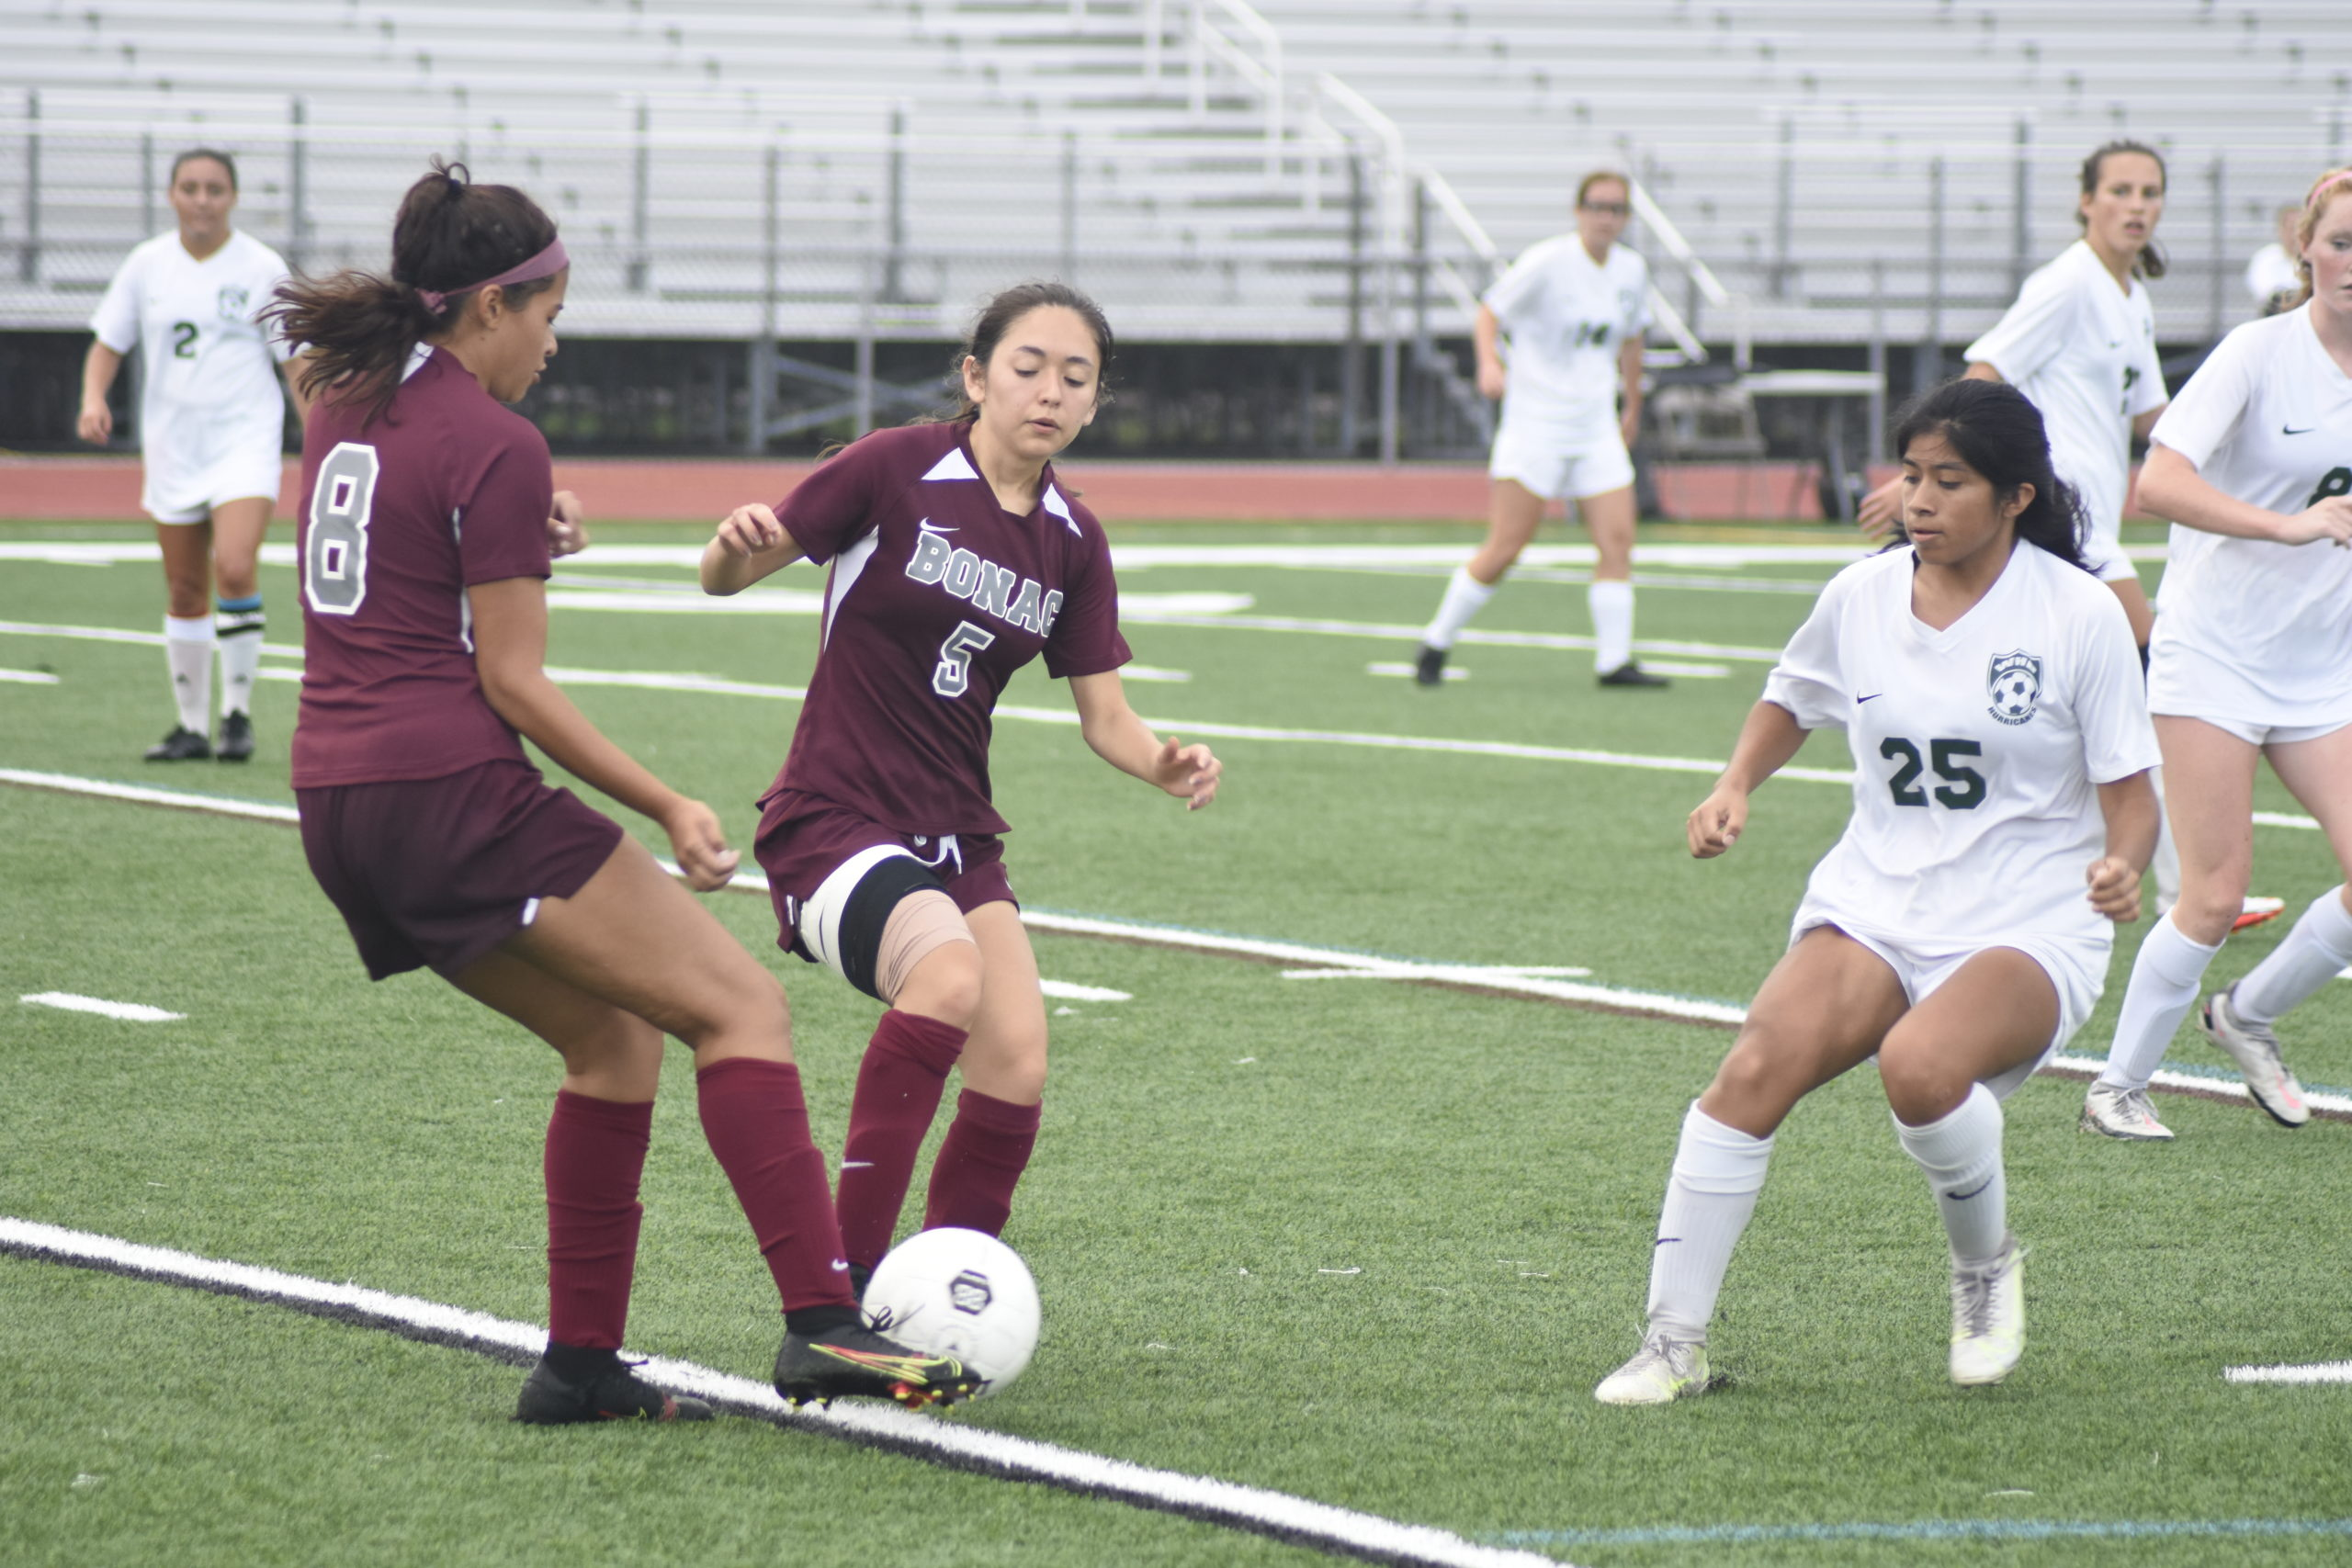 Bonackers Daniela Chavez (5) and Melanie Luque try to avoid one another as Hurricane Sintia Gregorio pressures them.